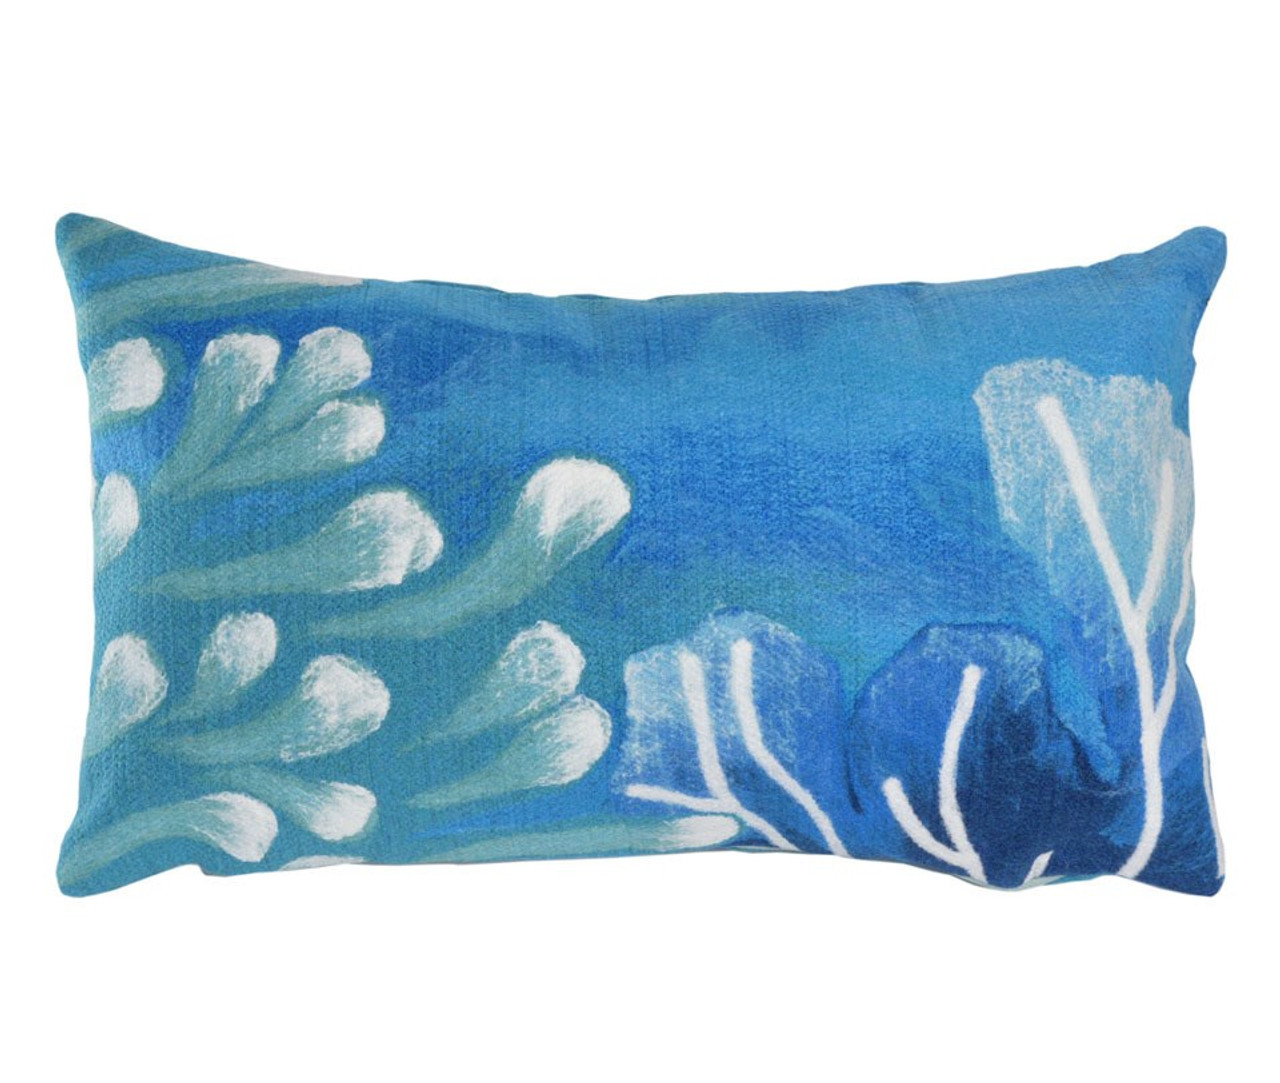 Visions Blue Reef Indoor/Outdoor Throw Pillow - Rectangle